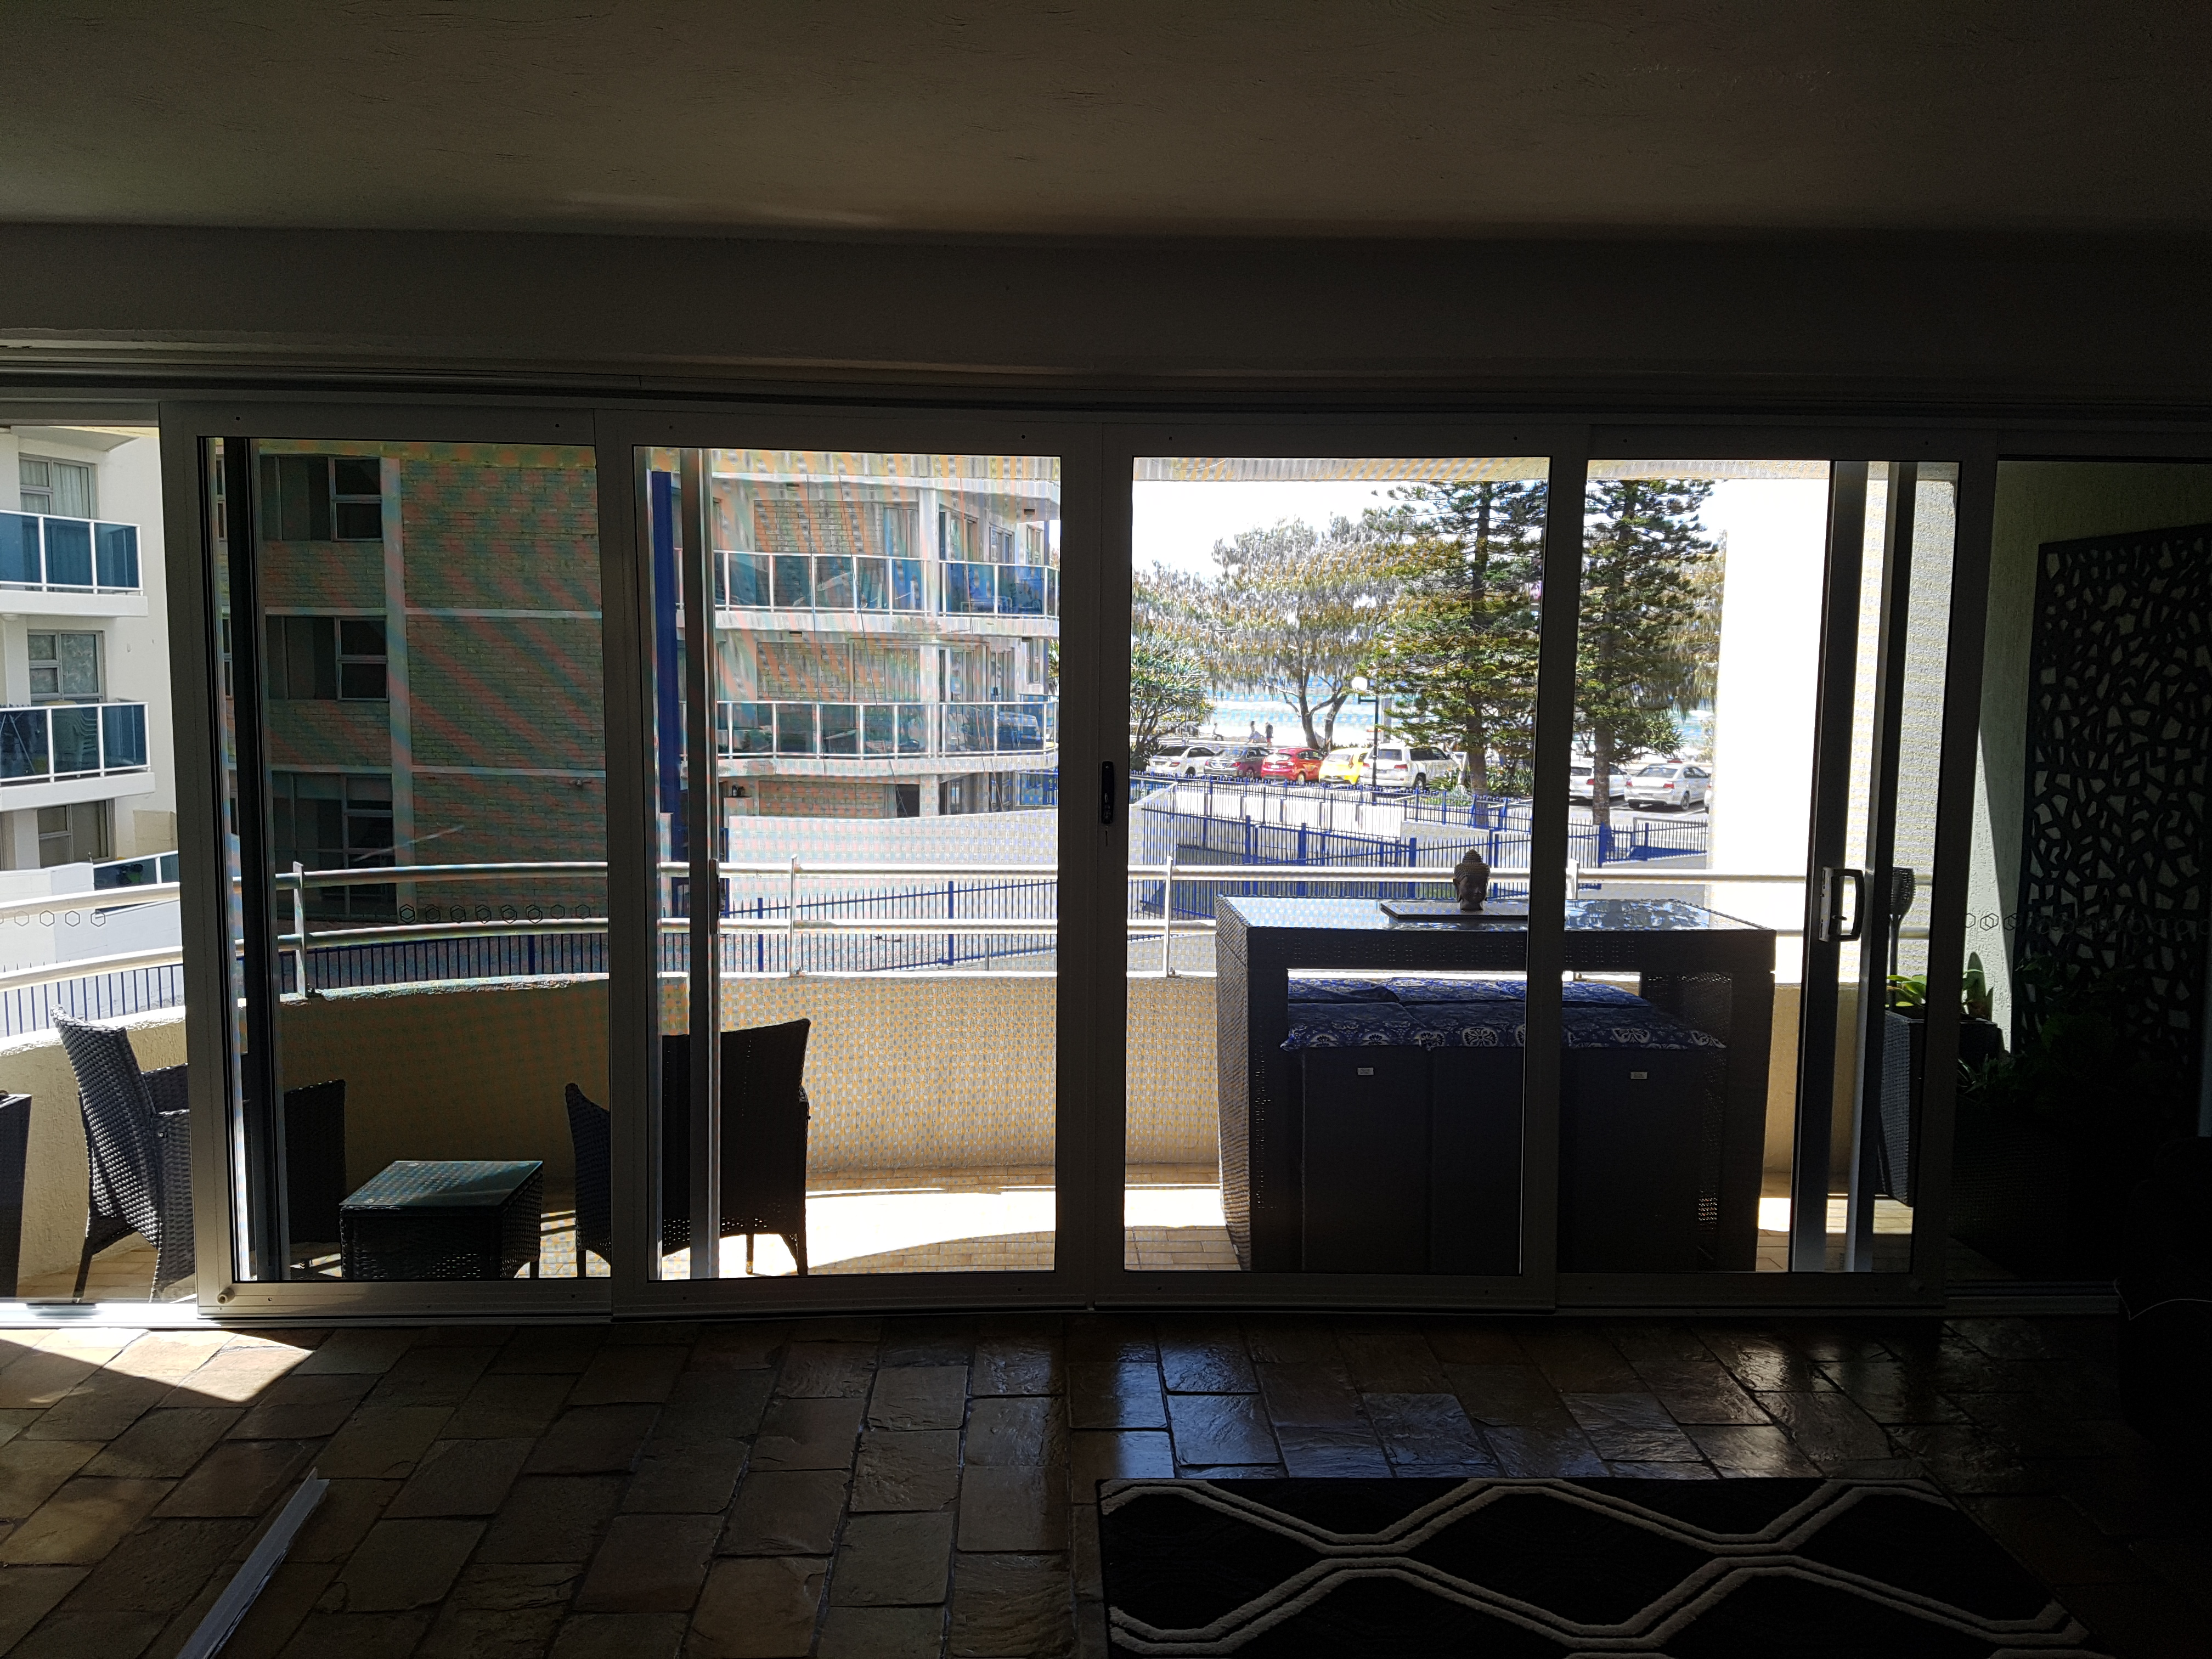 View through security doors, Surfers Paradise